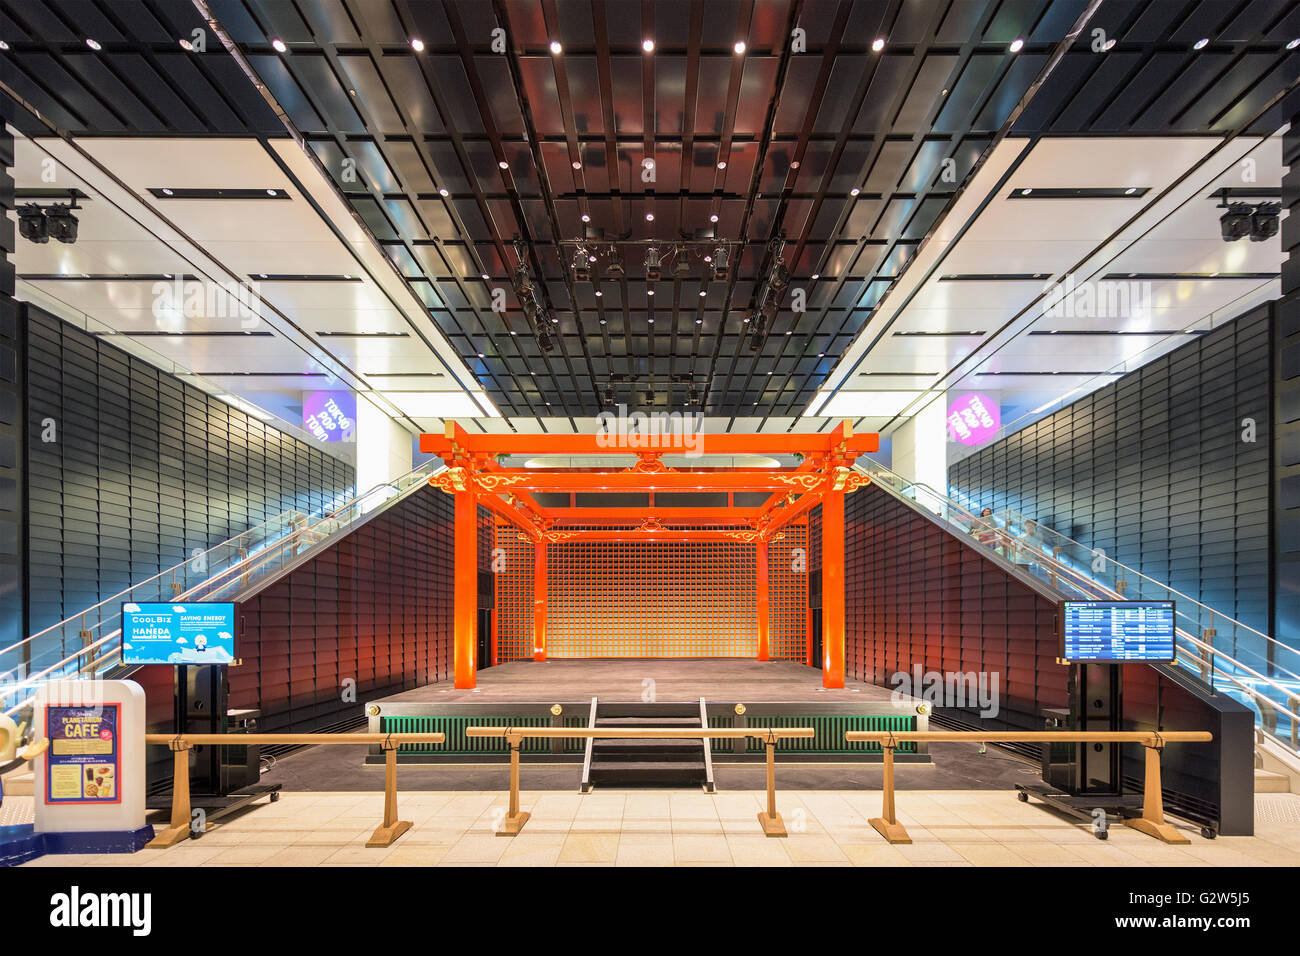 TOKYO - SEPTEMBER 1, 2015: The traditional stage in Haneda Airport. The stage is part of the Edo Market inside the - Stock Image